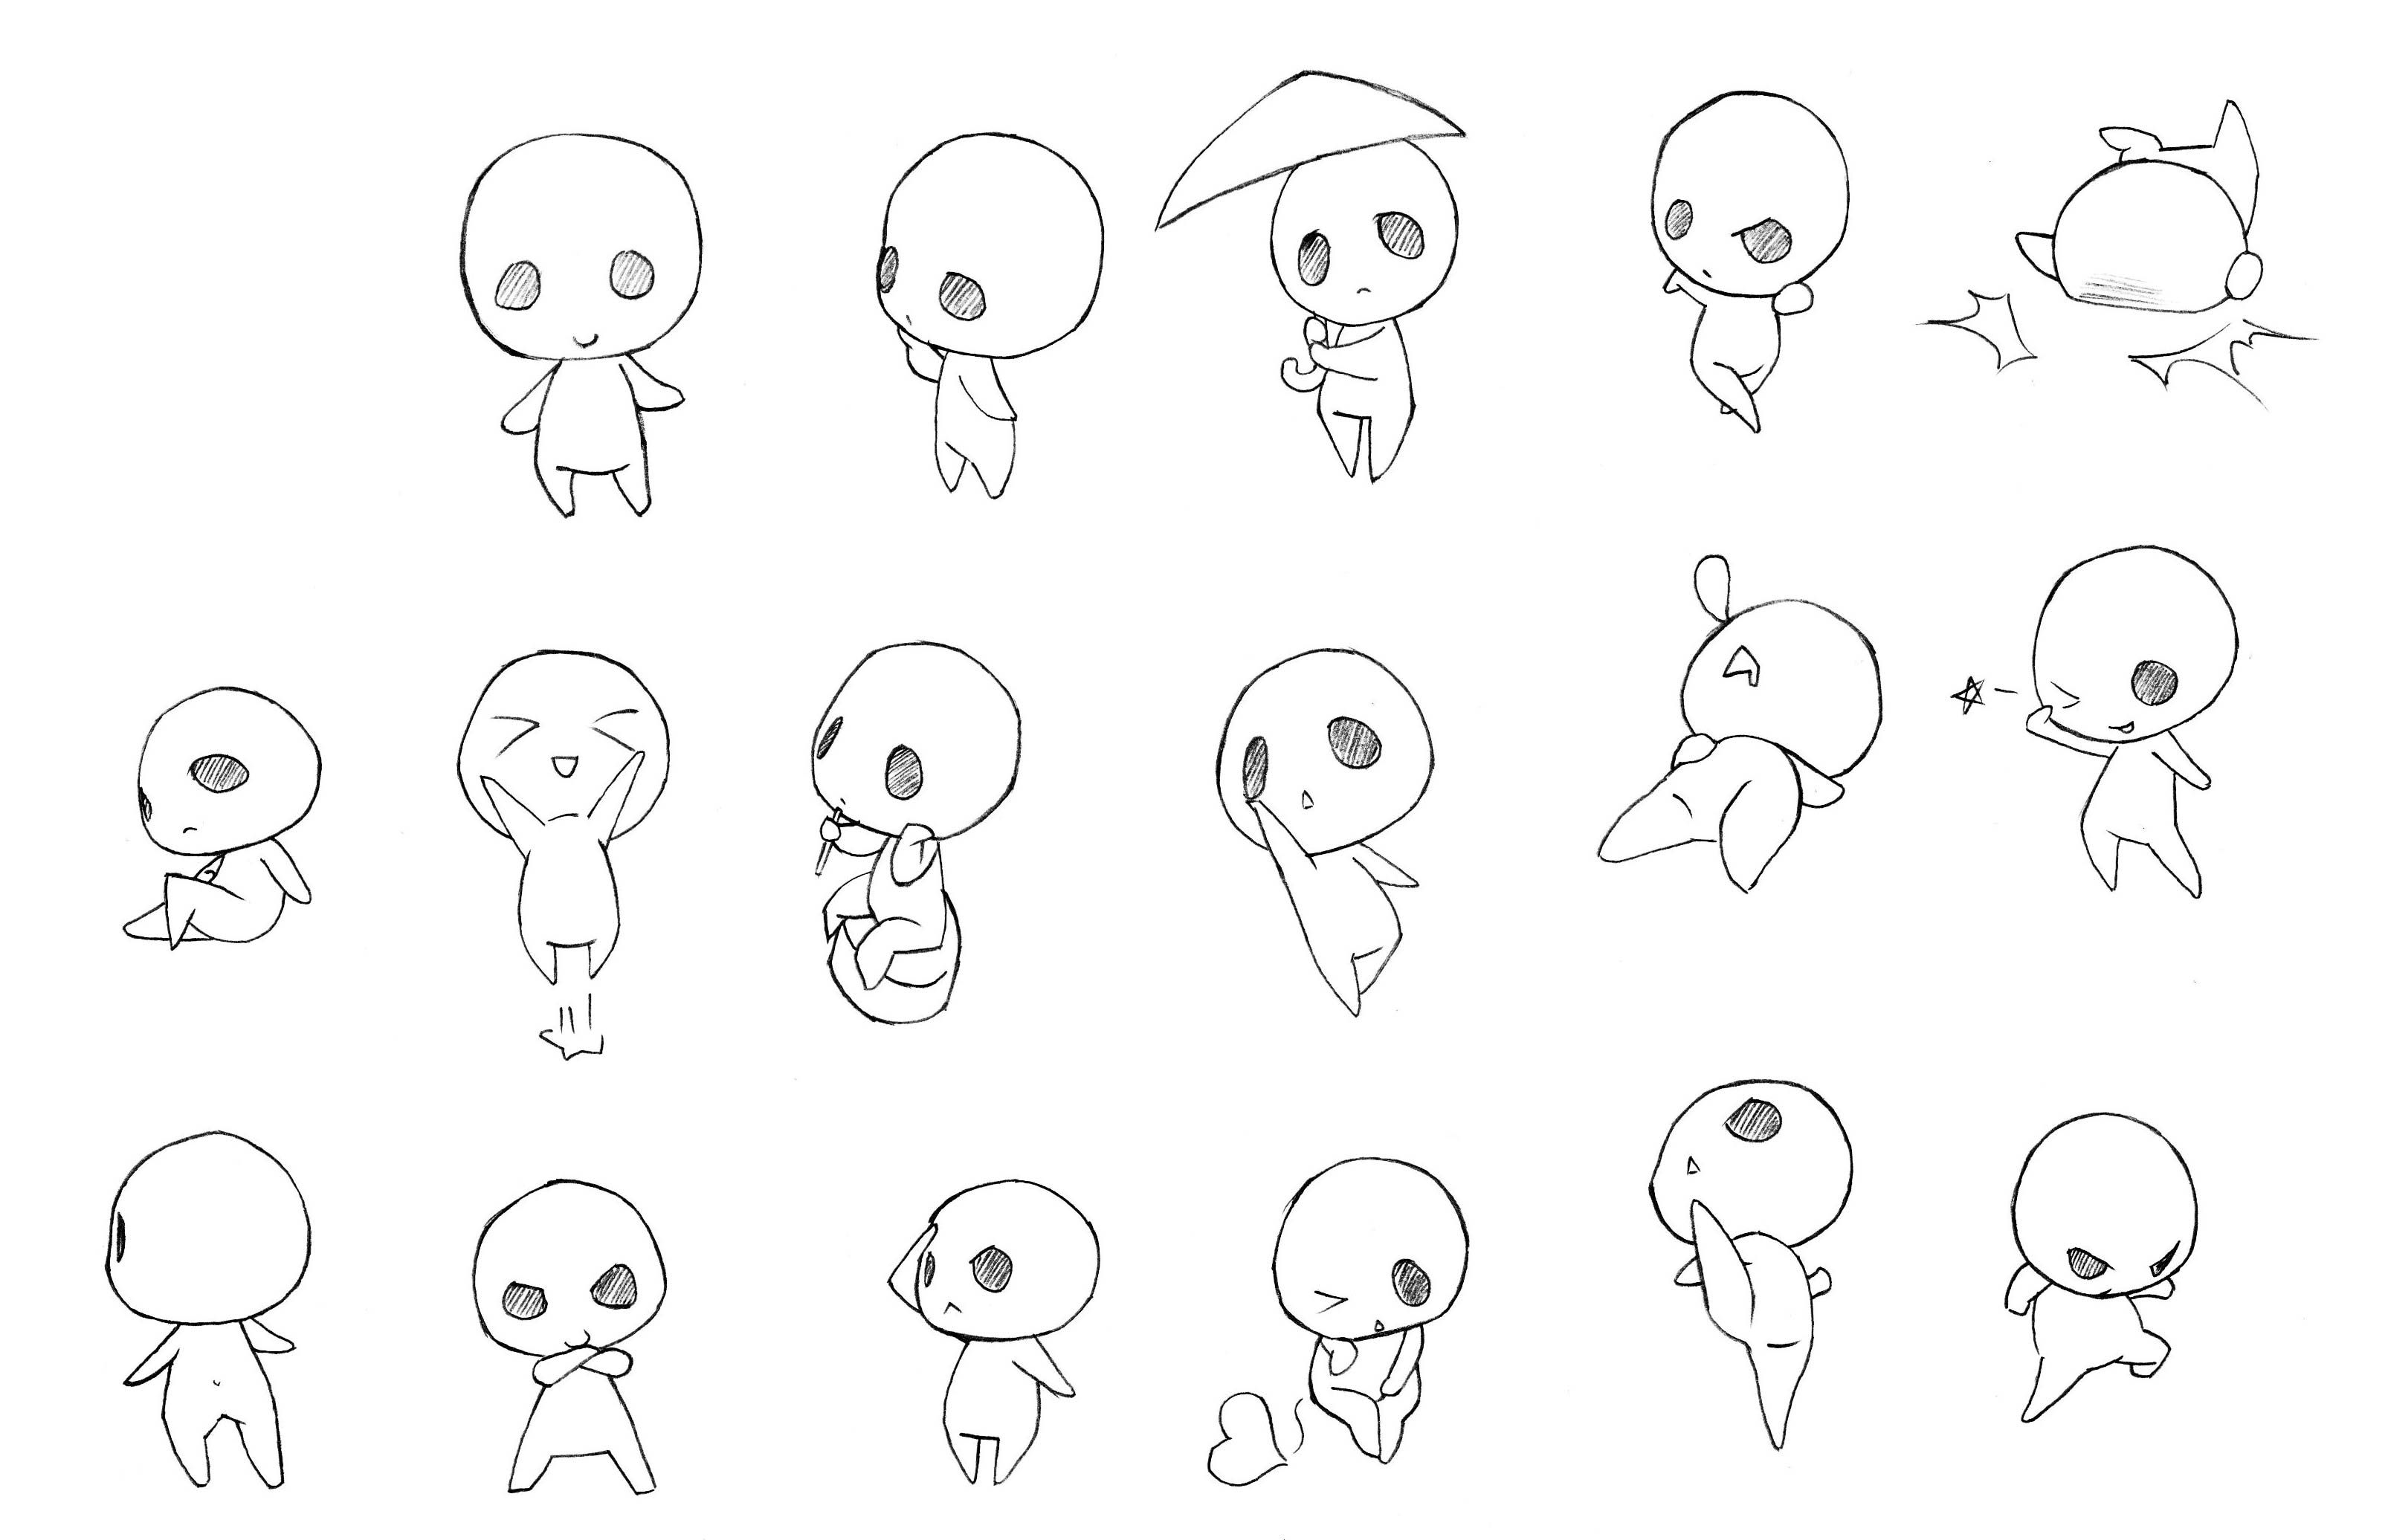 Chibi Drawing Reference And Sketches For Artists Chibi Drawings Chibi Body Chibi Sketch